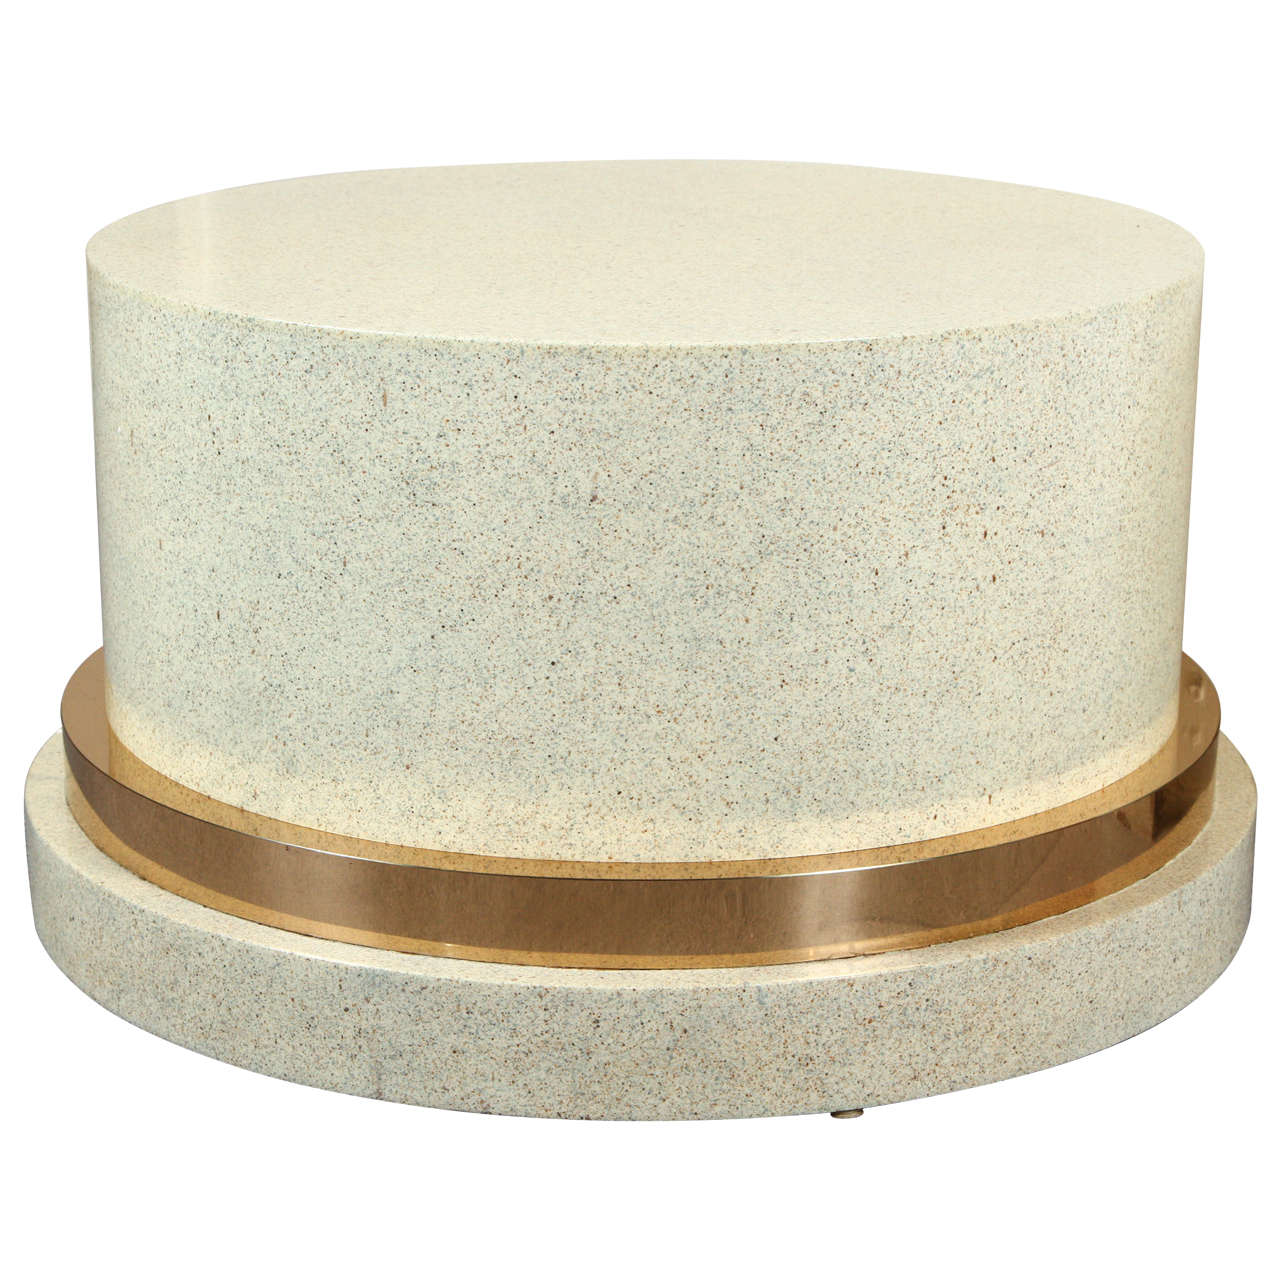 Stone Base Coffee Table.Low Pedestal Or Coffee Table Base Of Wood And Brass With A Faux Stone Finish